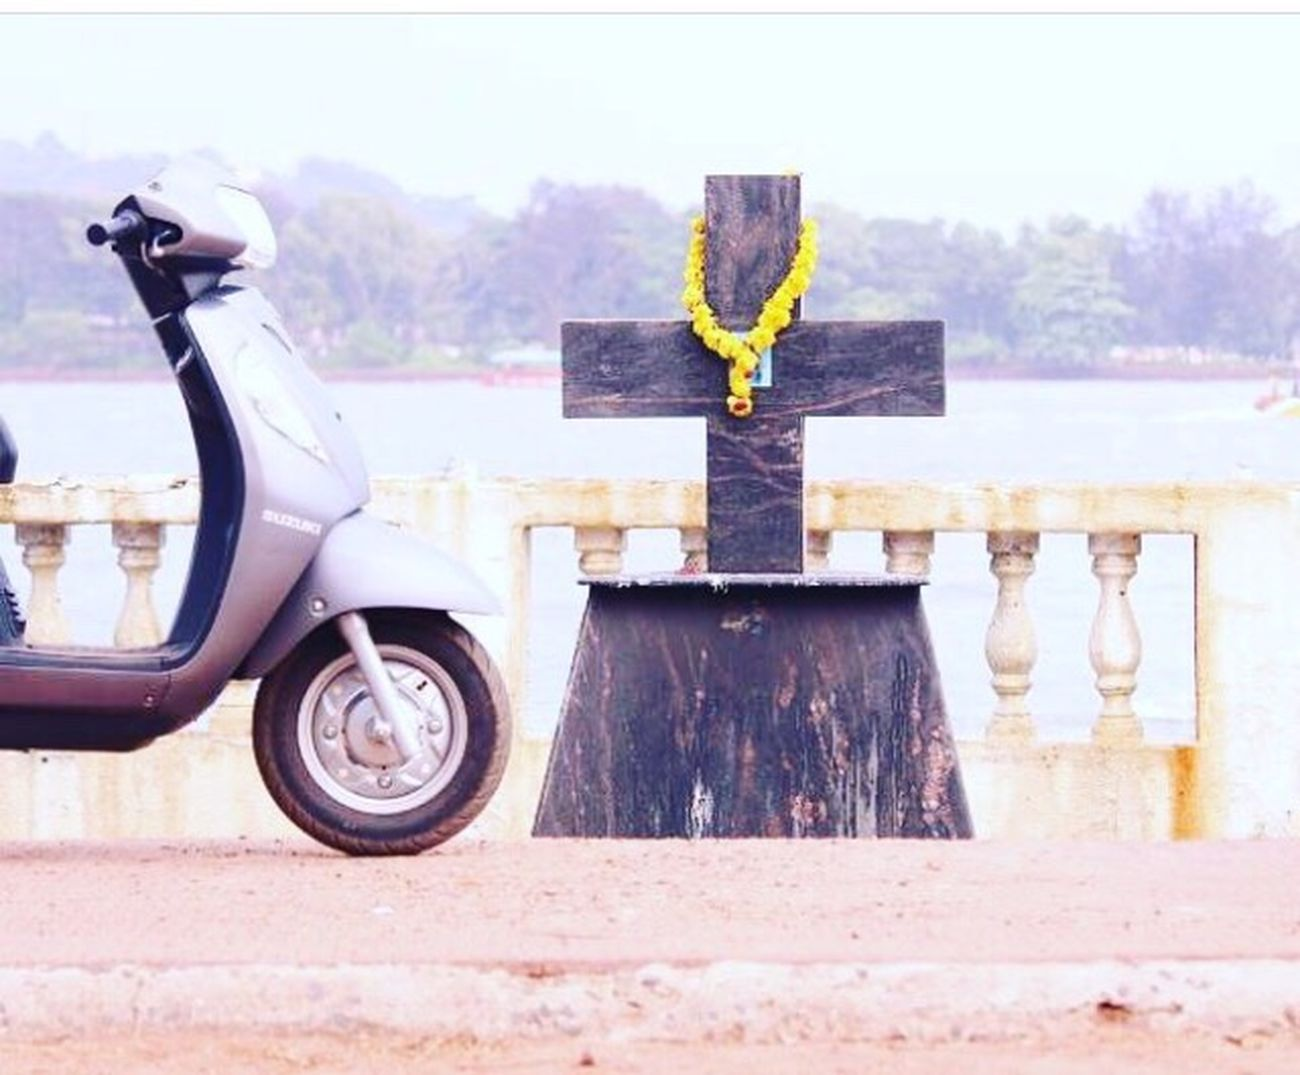 Chruch⛪ Bike Ride Fundaysunday Cool_capture_ Awesome_environment